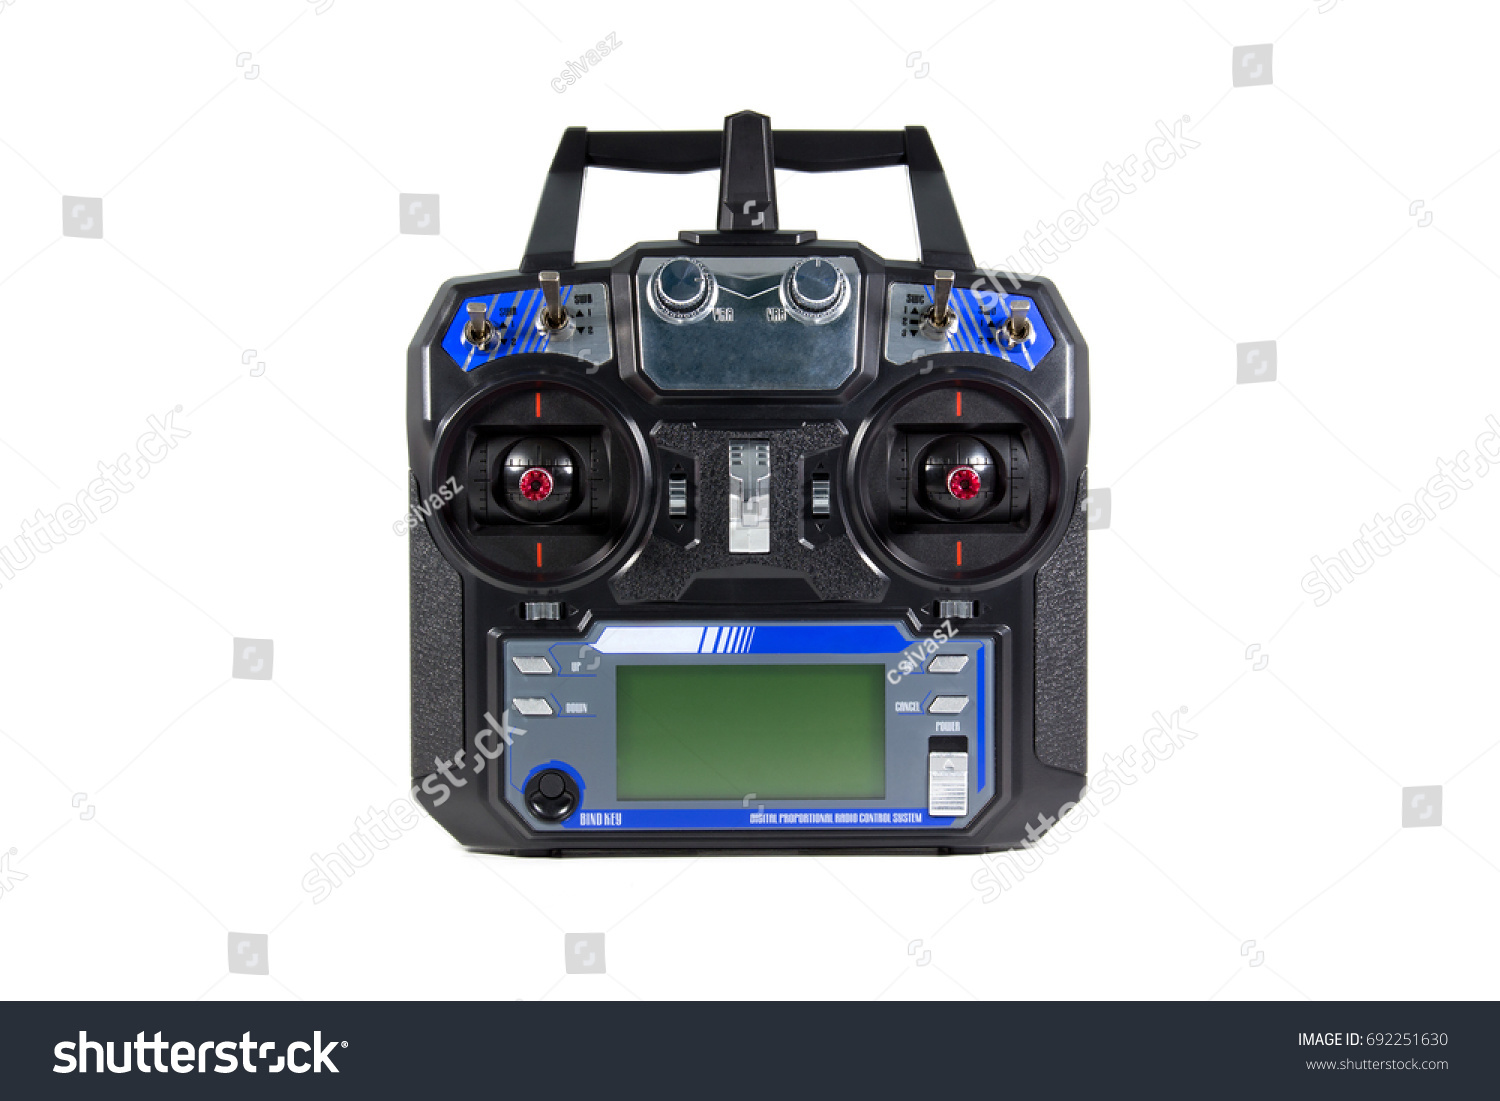 Wireless Remote Control Rc Car Boat Stock Photo Edit Now 692251630